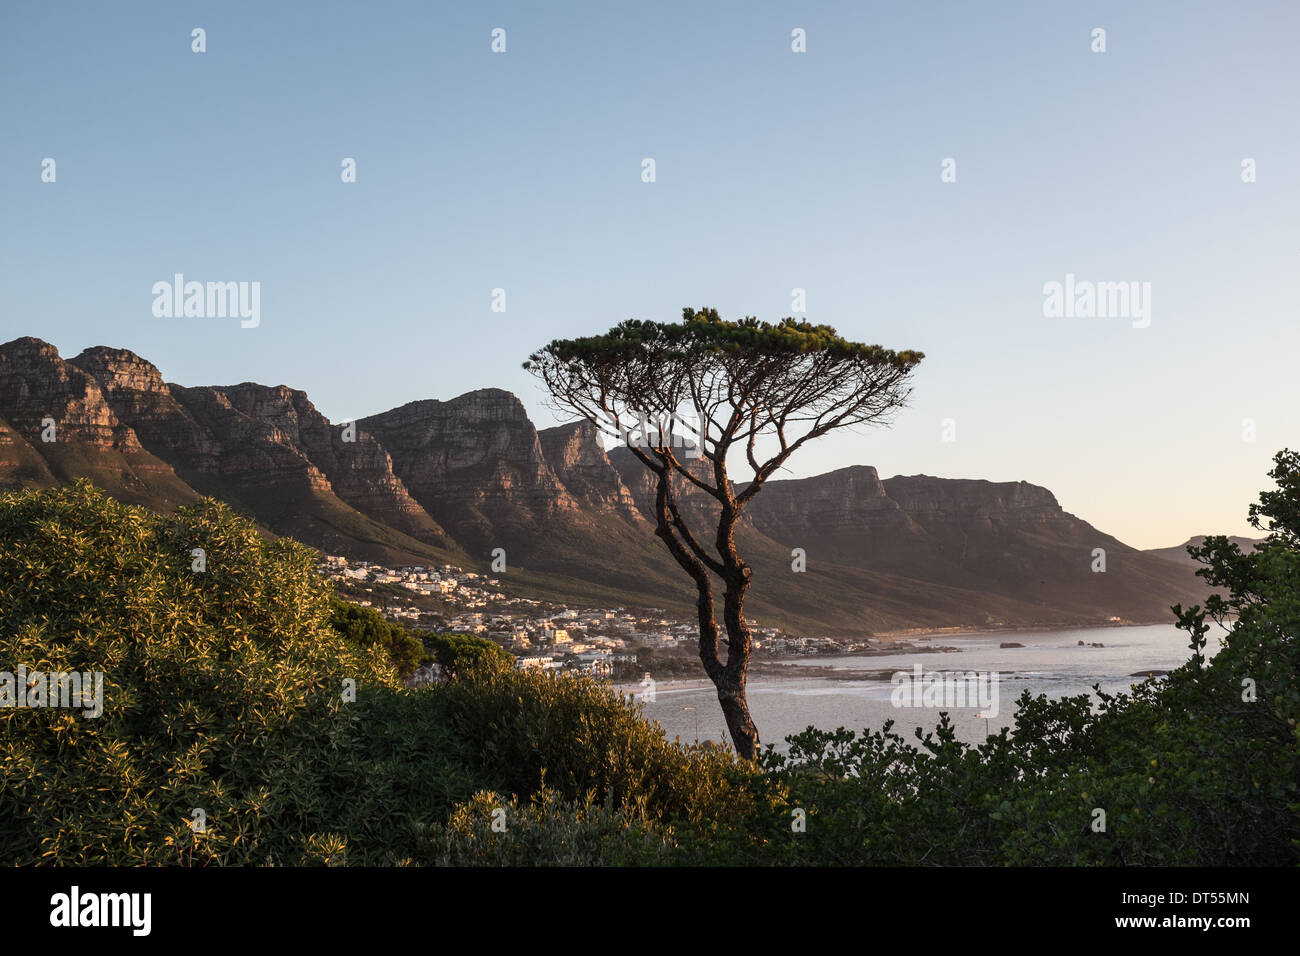 View of Camps Bay & The Twelve 12 Apostles, Cape Town, South Africa. - Stock Image